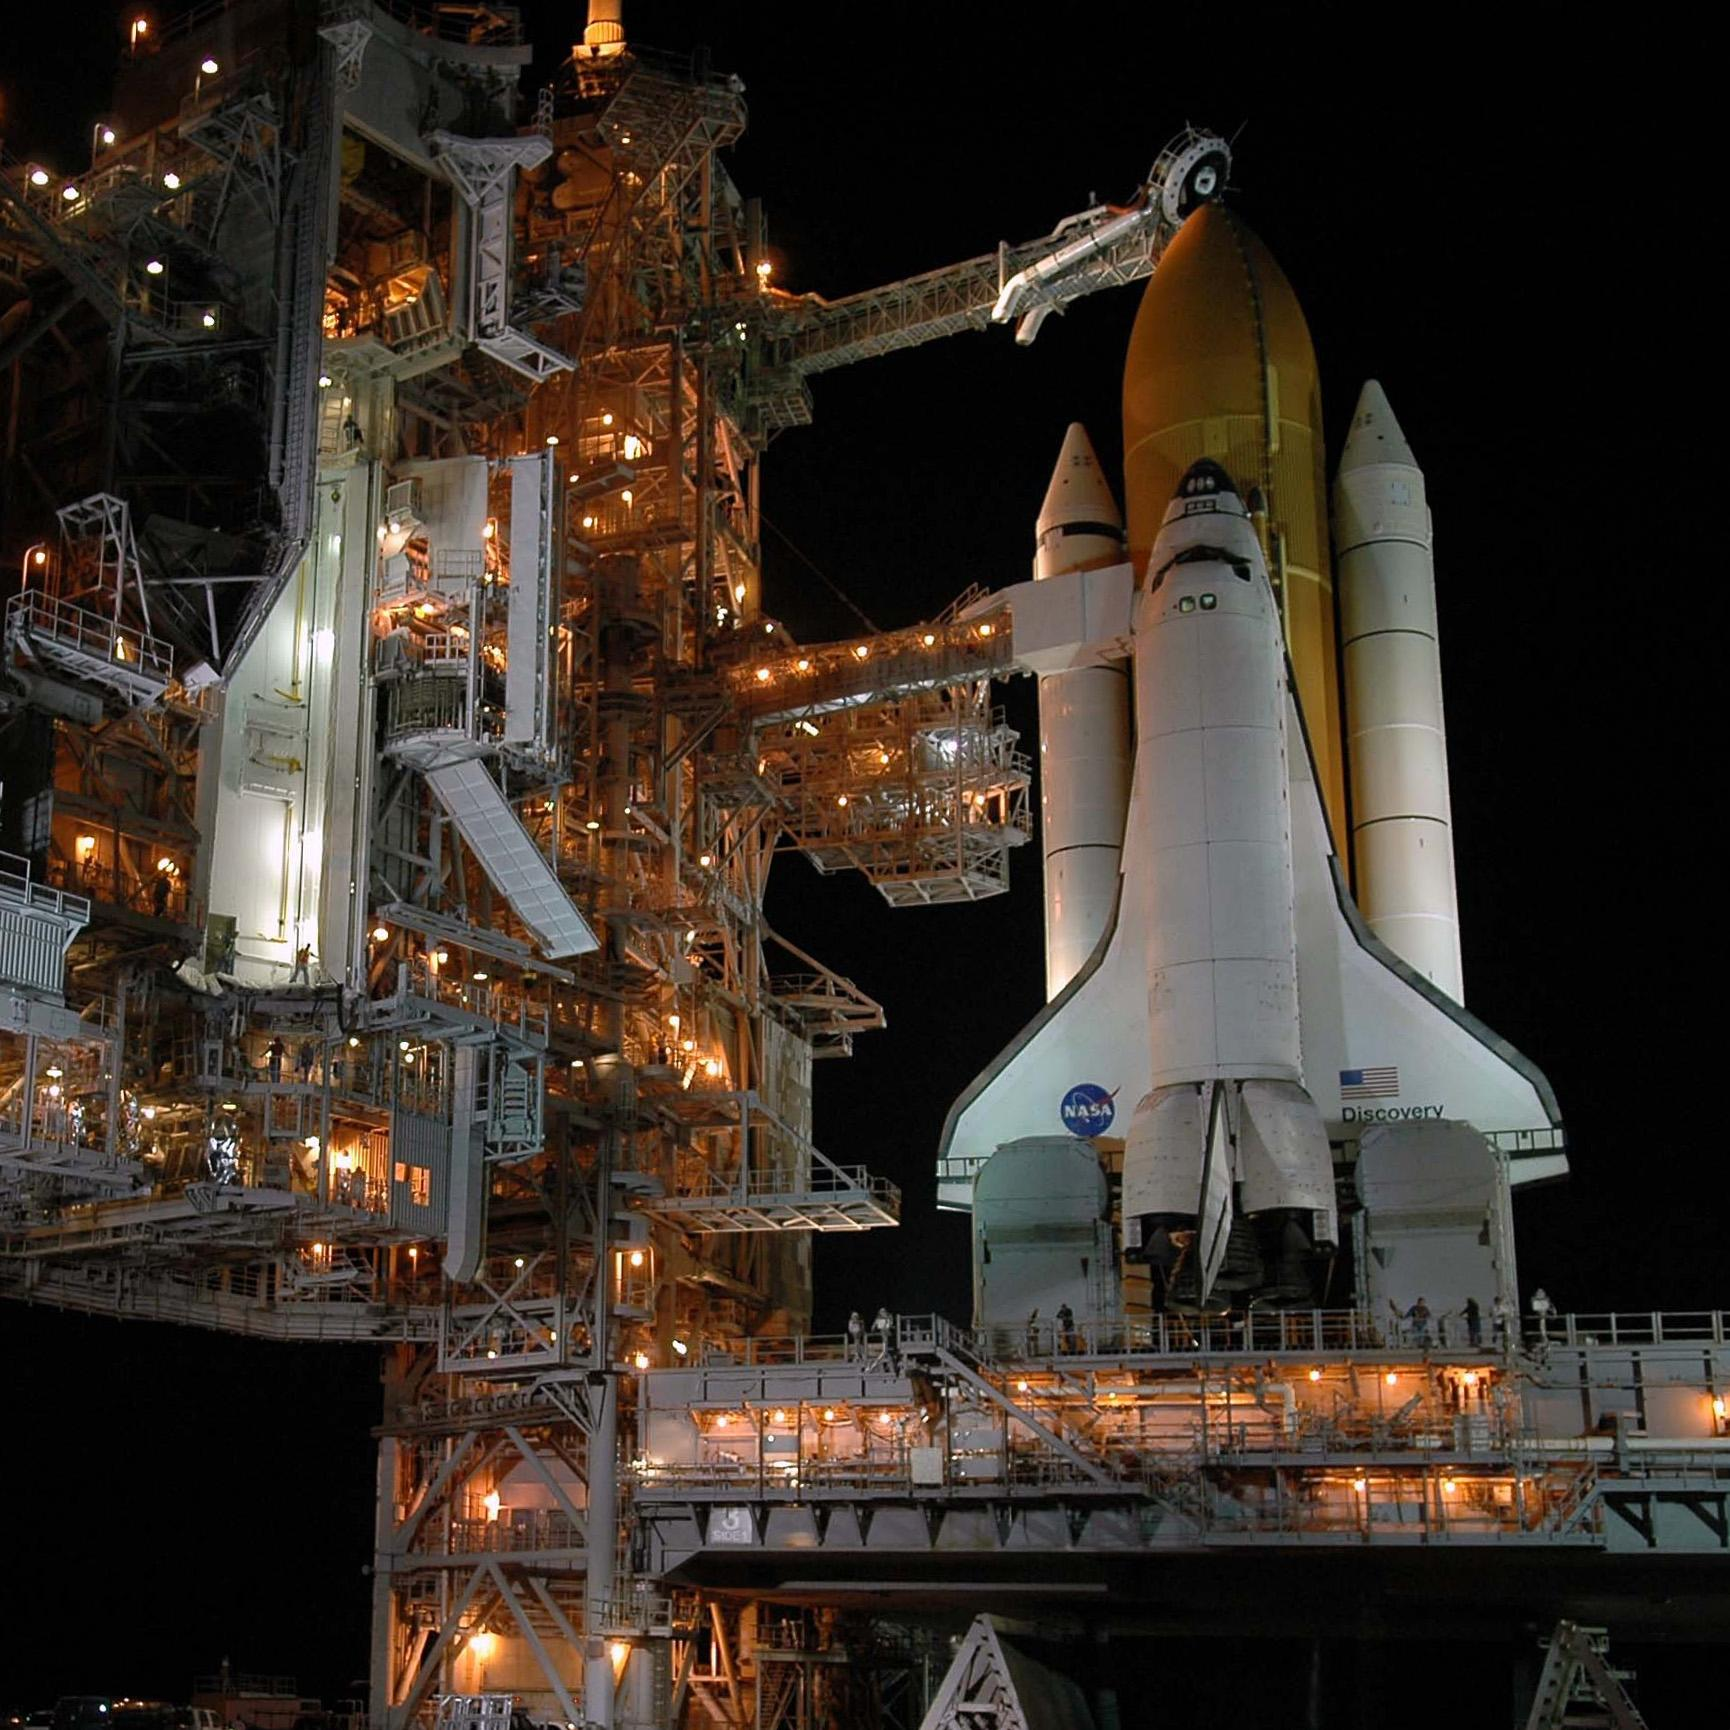 How do hydraulics work space shuttle night